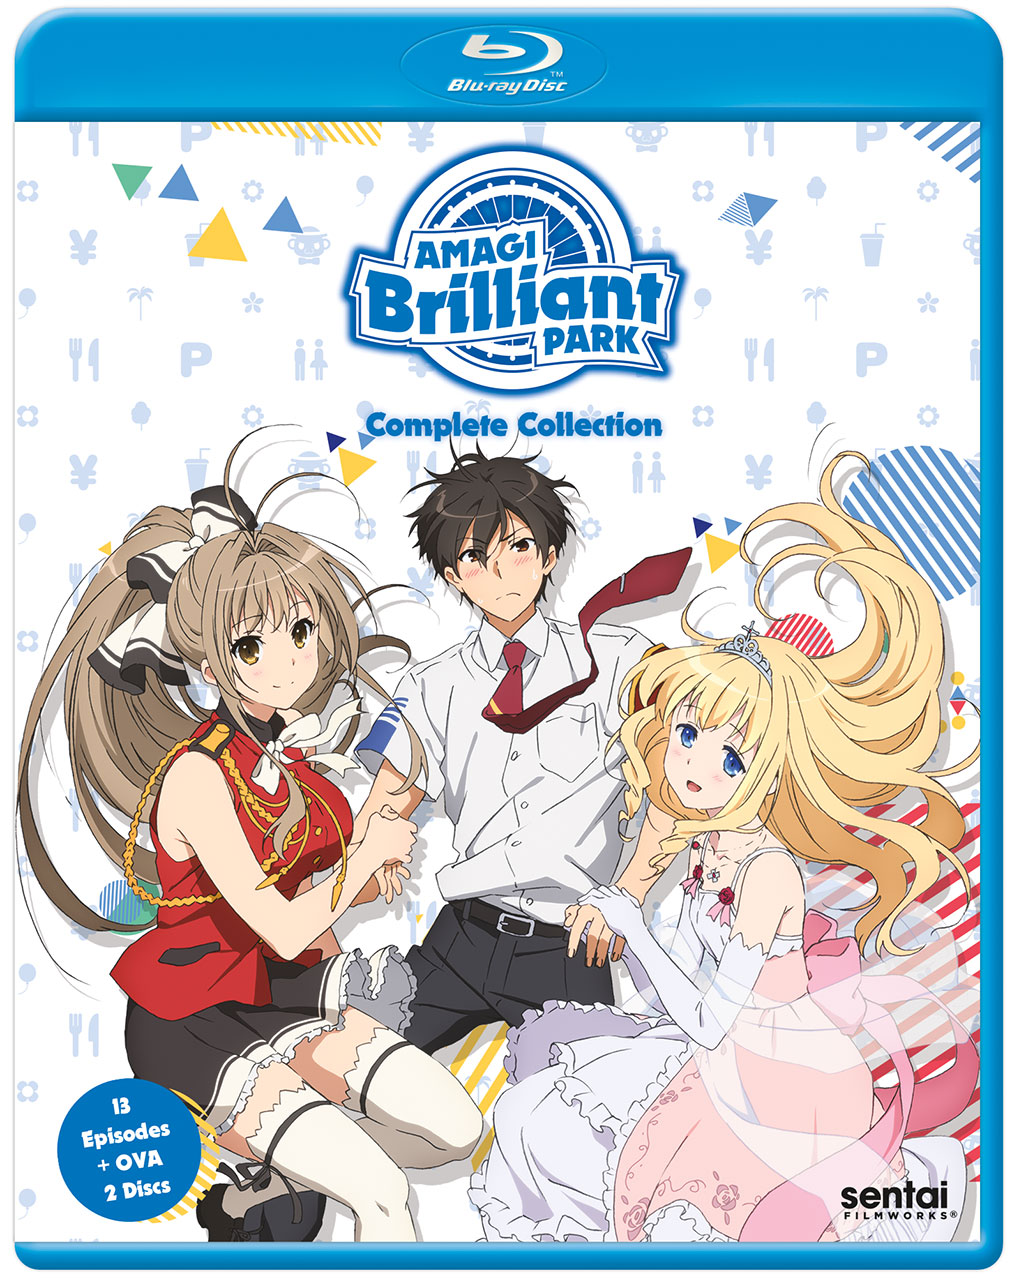 Amagi Brilliant Park Blu-ray 814131011695